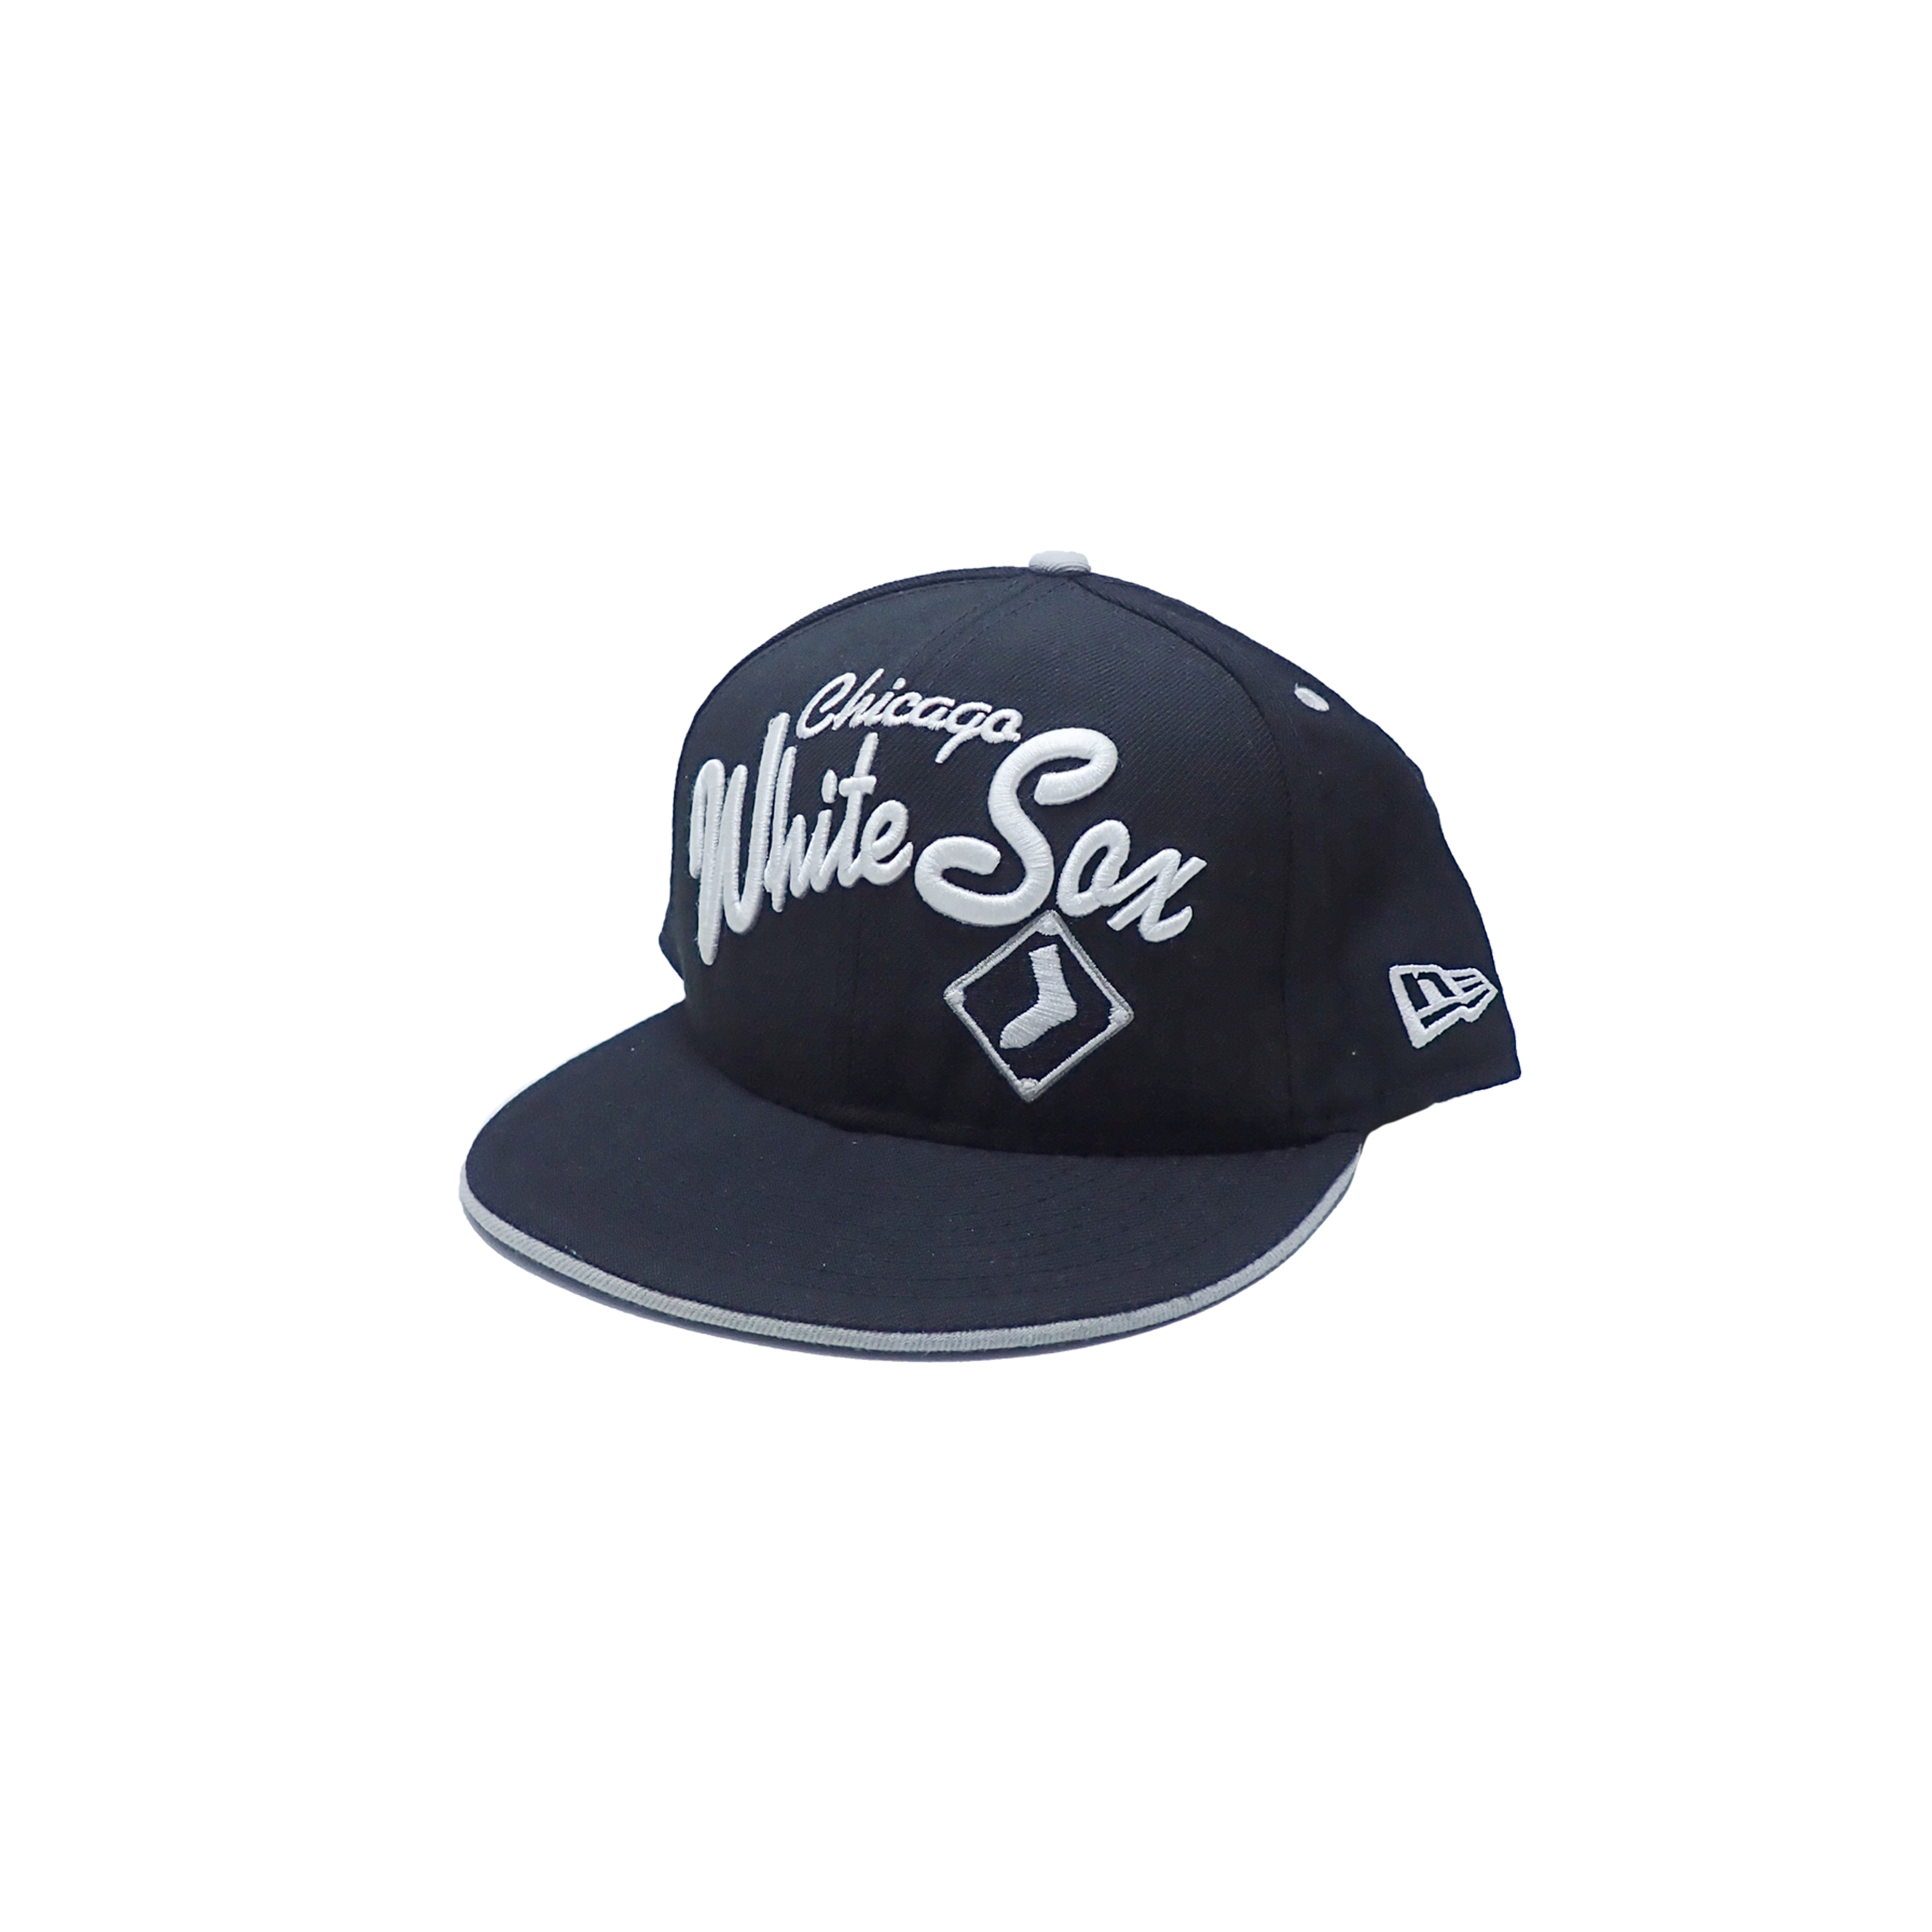 New Era White Sox Cap